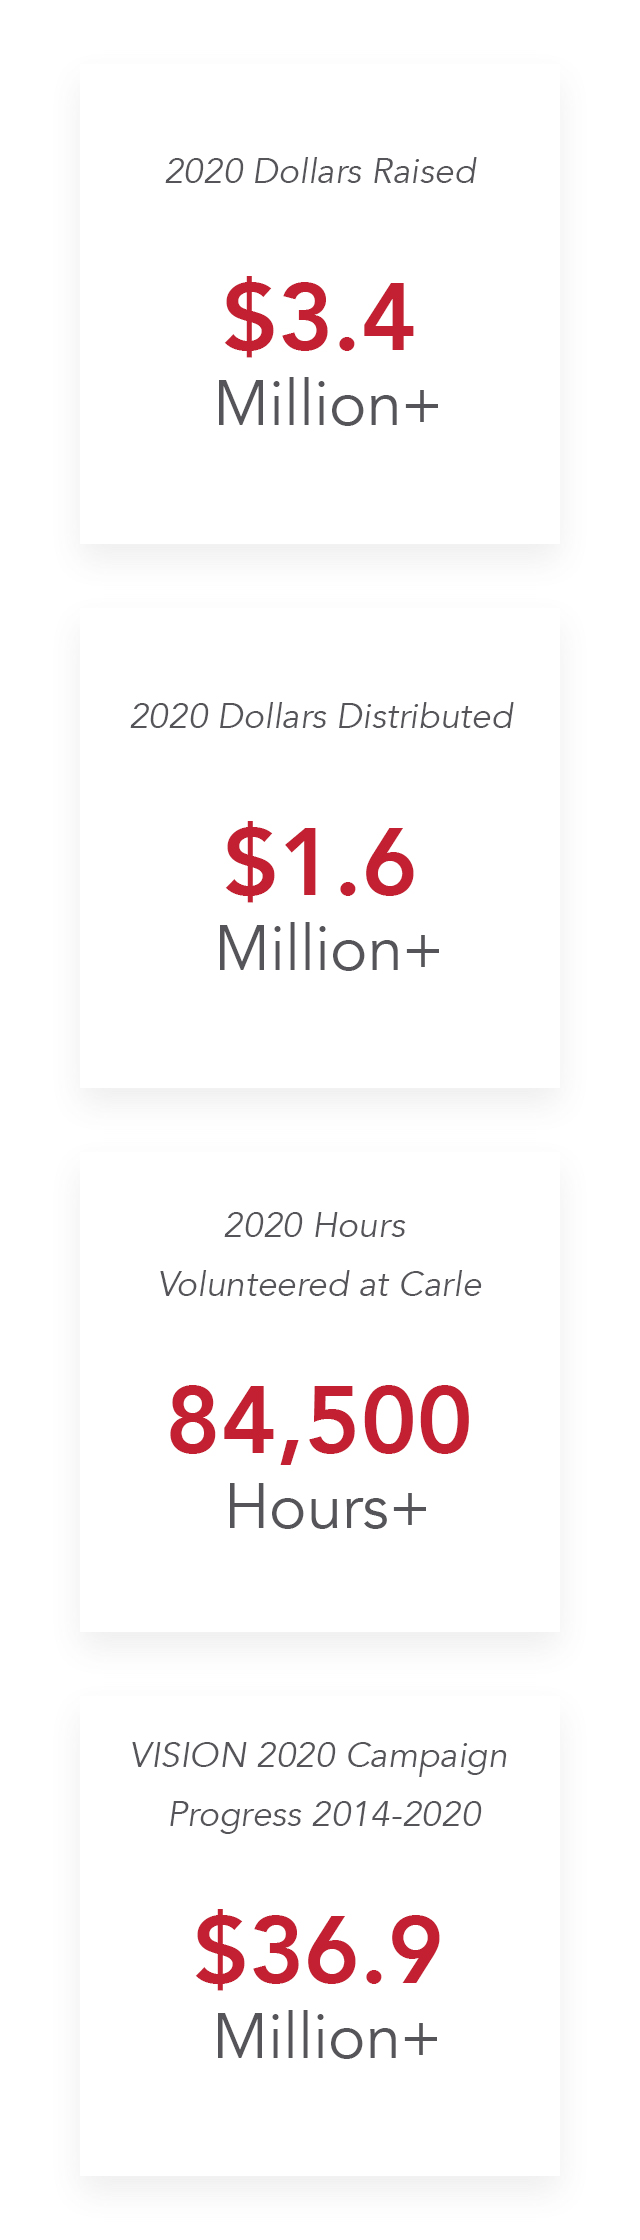 Inforgraphic: 2019 Dollars Raised: $2.8 Million + , 2019 Dollars Distributed: $2.1M+, 2019 Hours Volunteered at Carle: 104,000 Hours+, VISION 202 Campaign Progress 2014-2019: $33.5 Million +